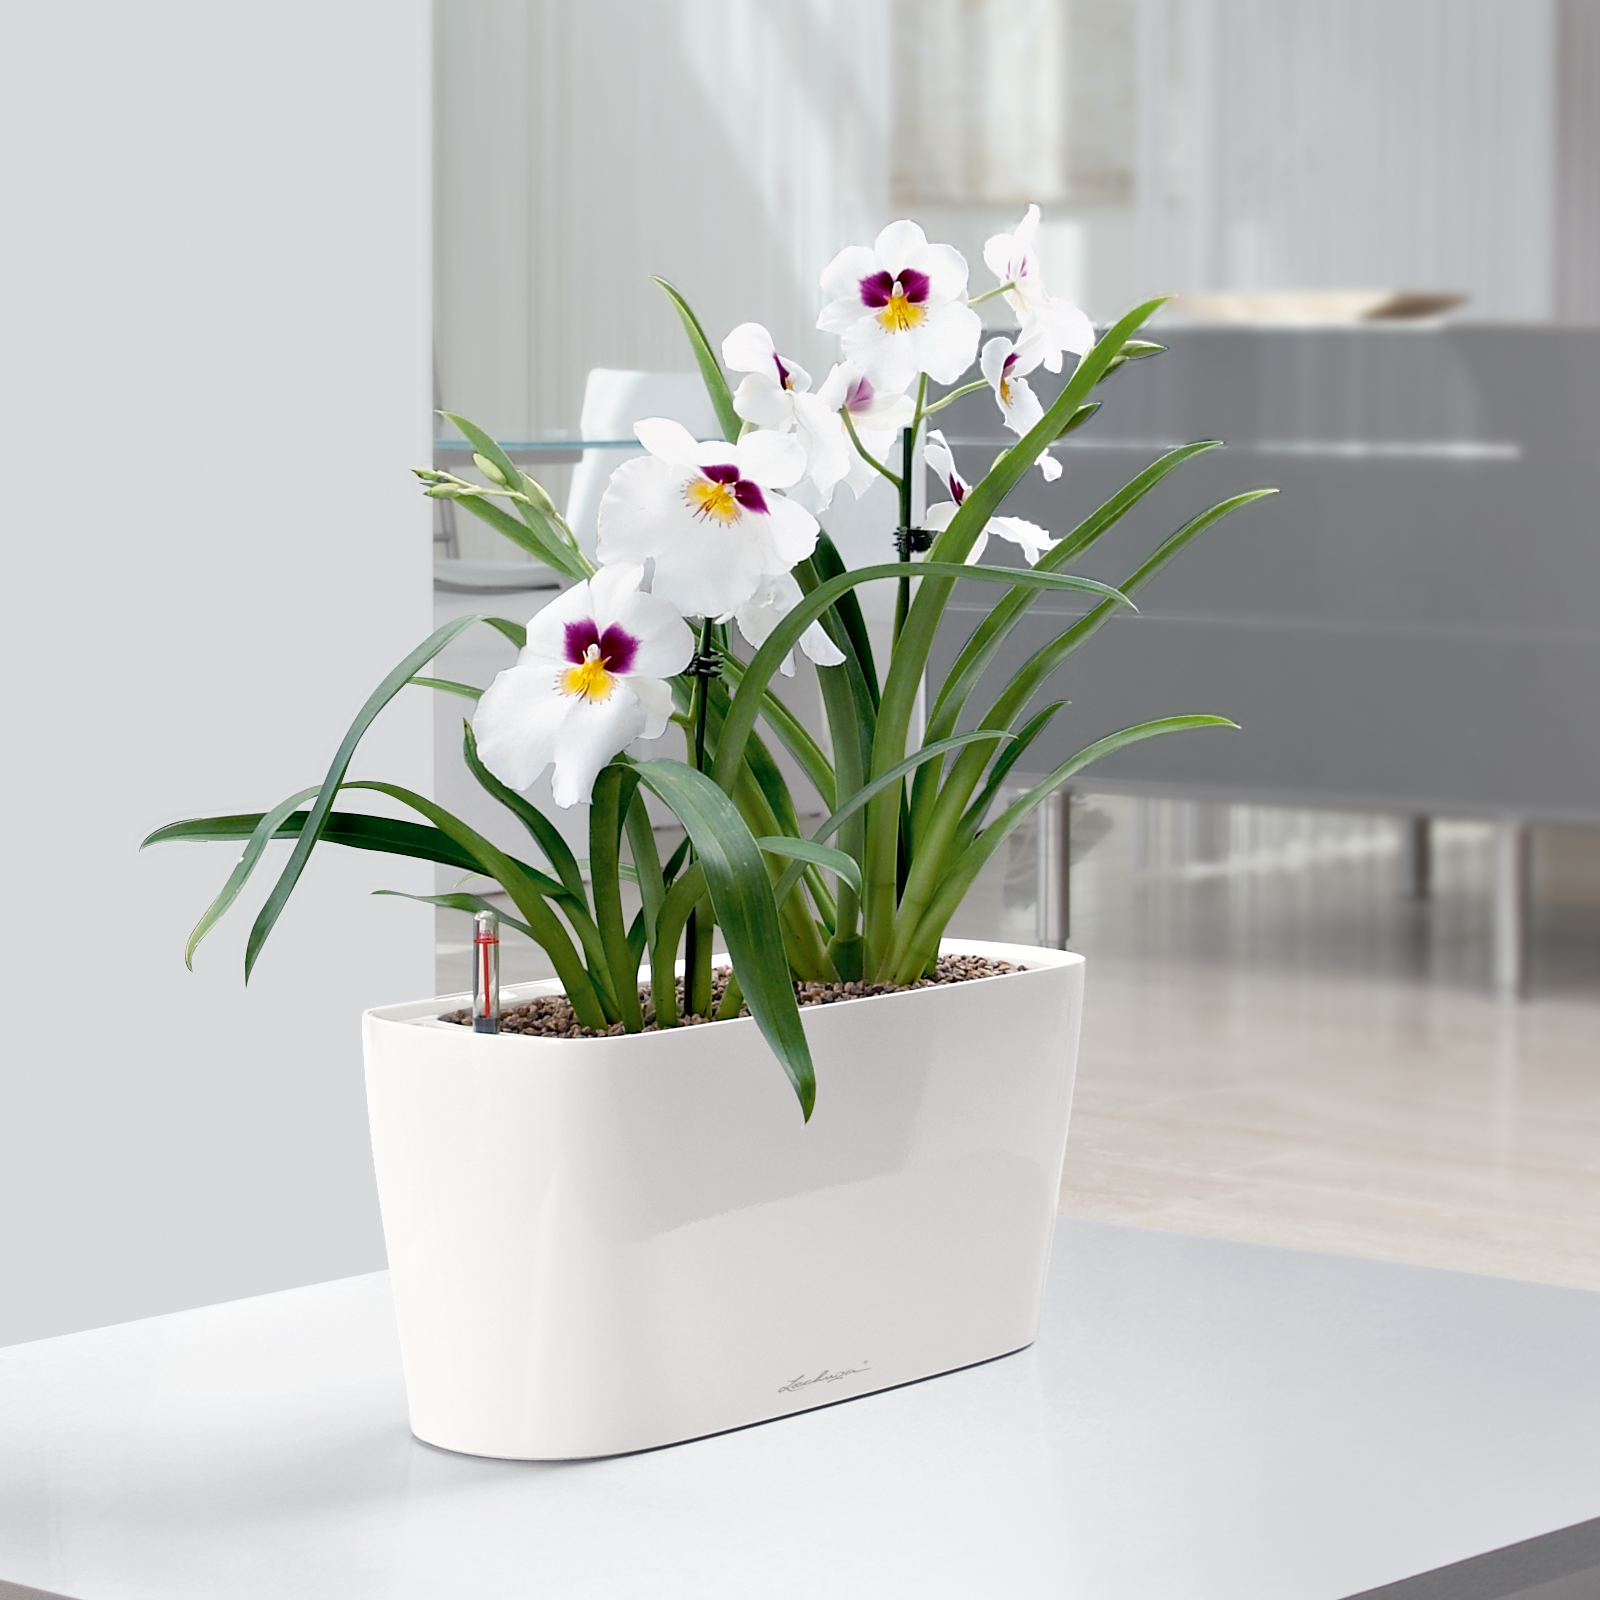 Lechuza Windowsill Self Watering Indoor Planter Planters At Hayneedle